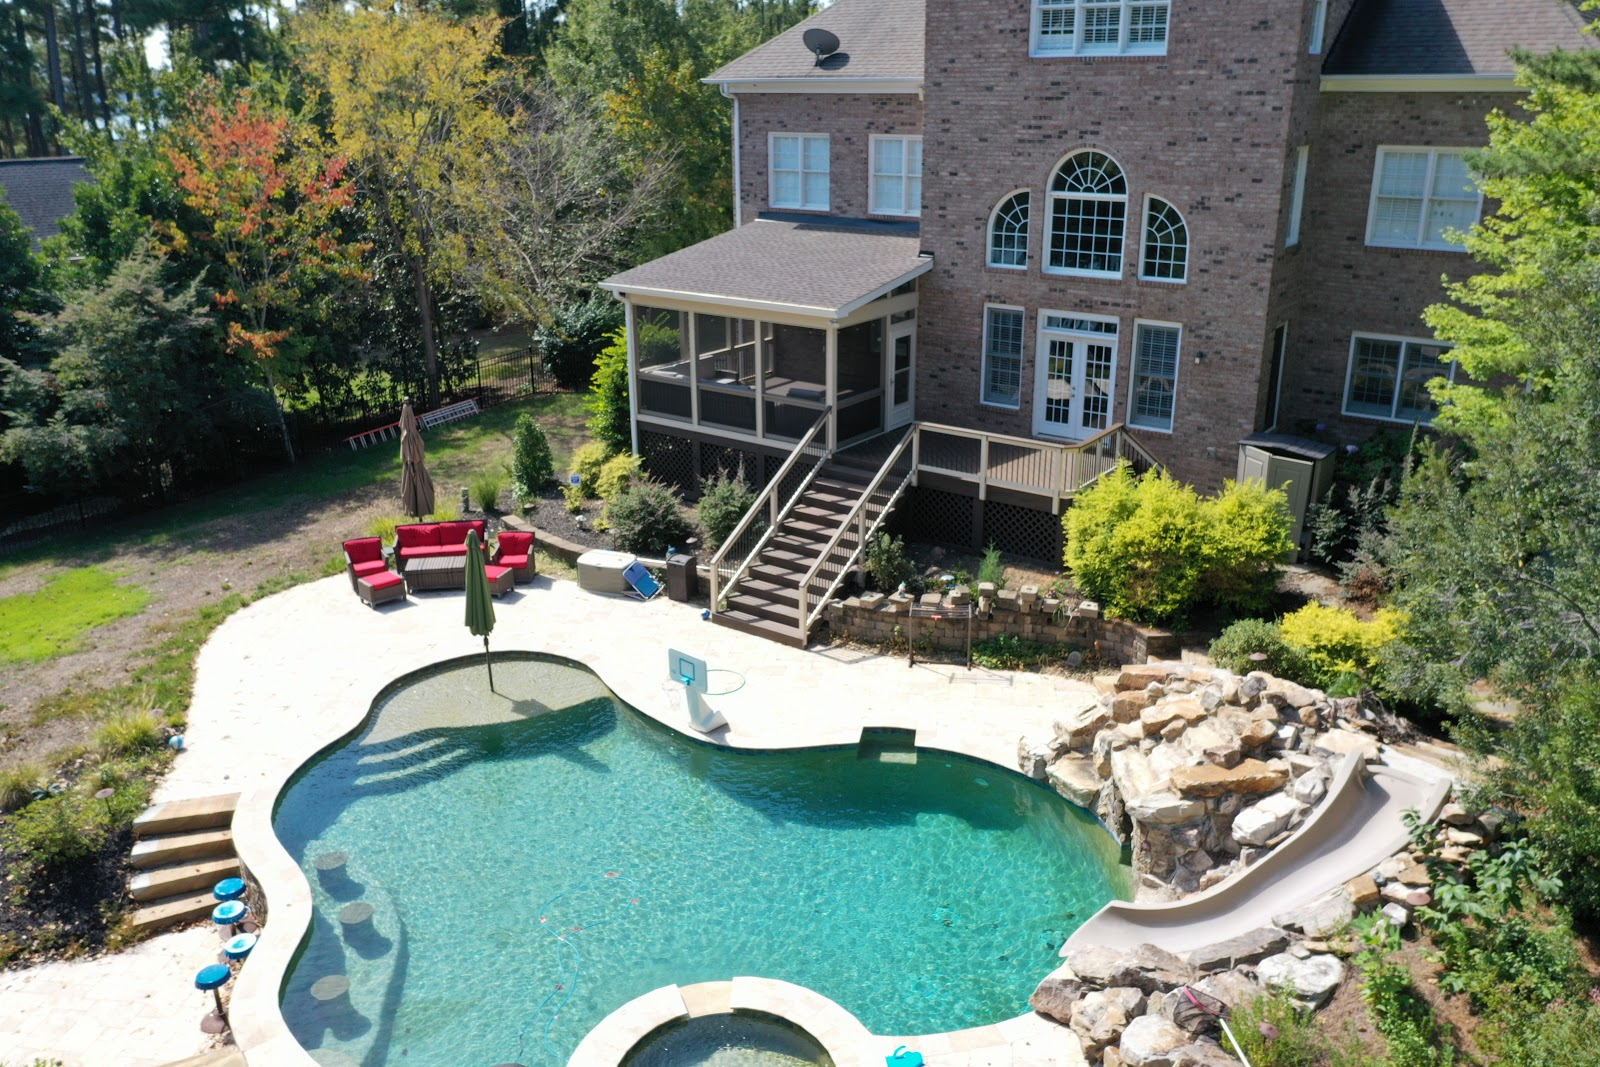 outdoor property overview with pool, covered porch, and stairs